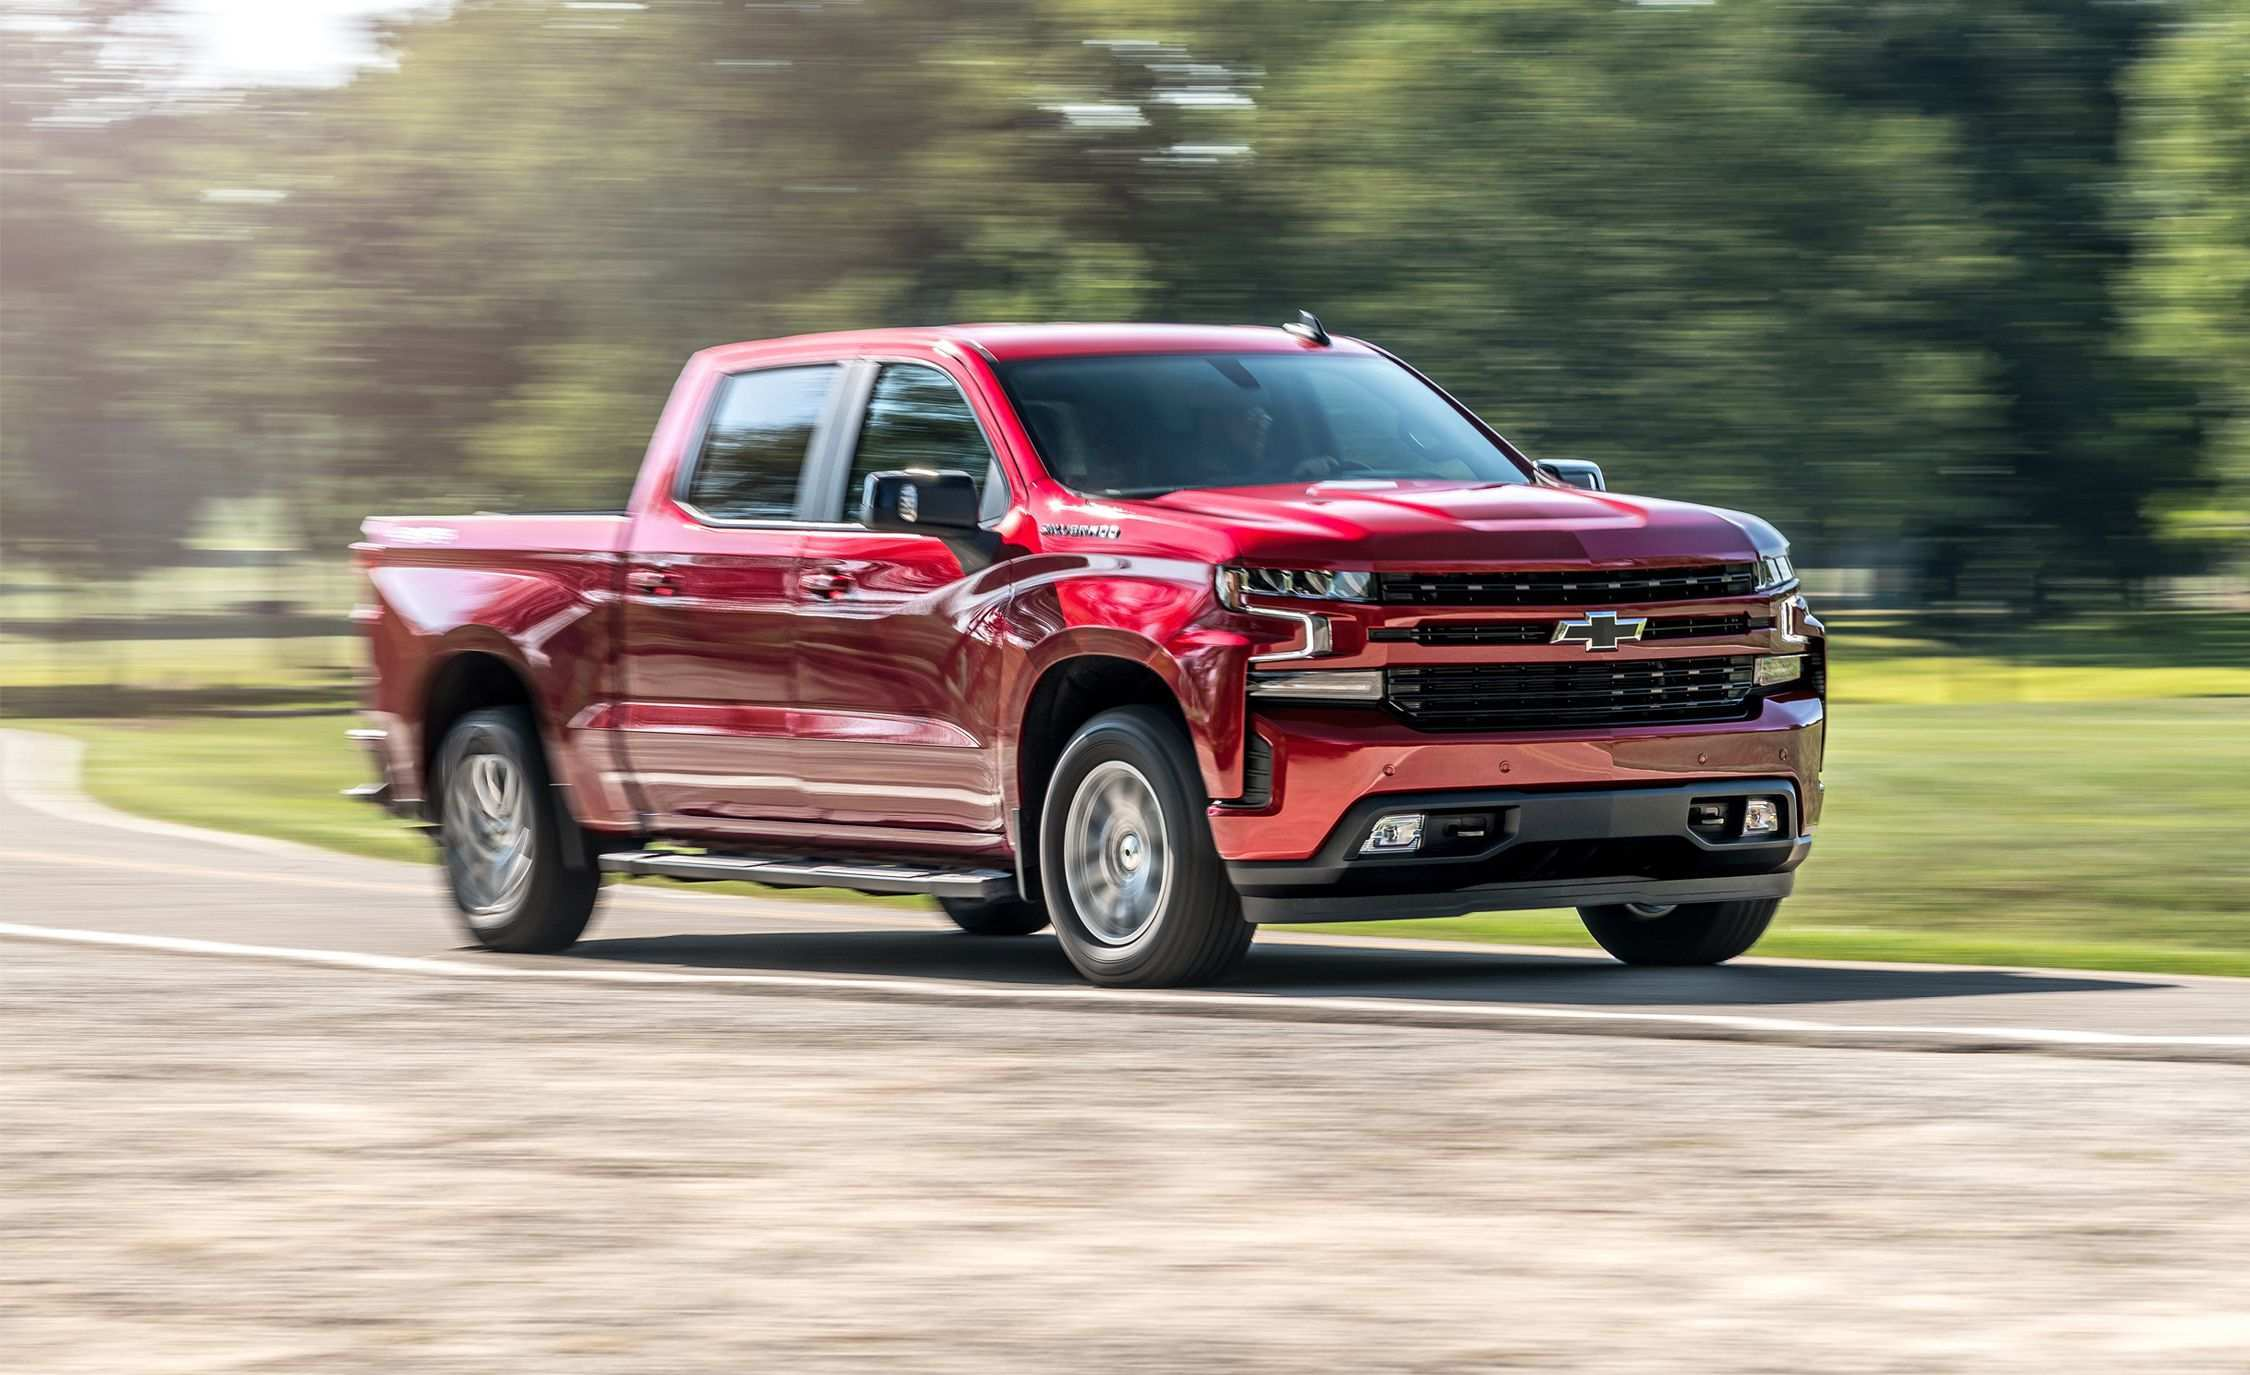 70 Best Review 2019 Chevrolet 1500 Model with 2019 Chevrolet 1500